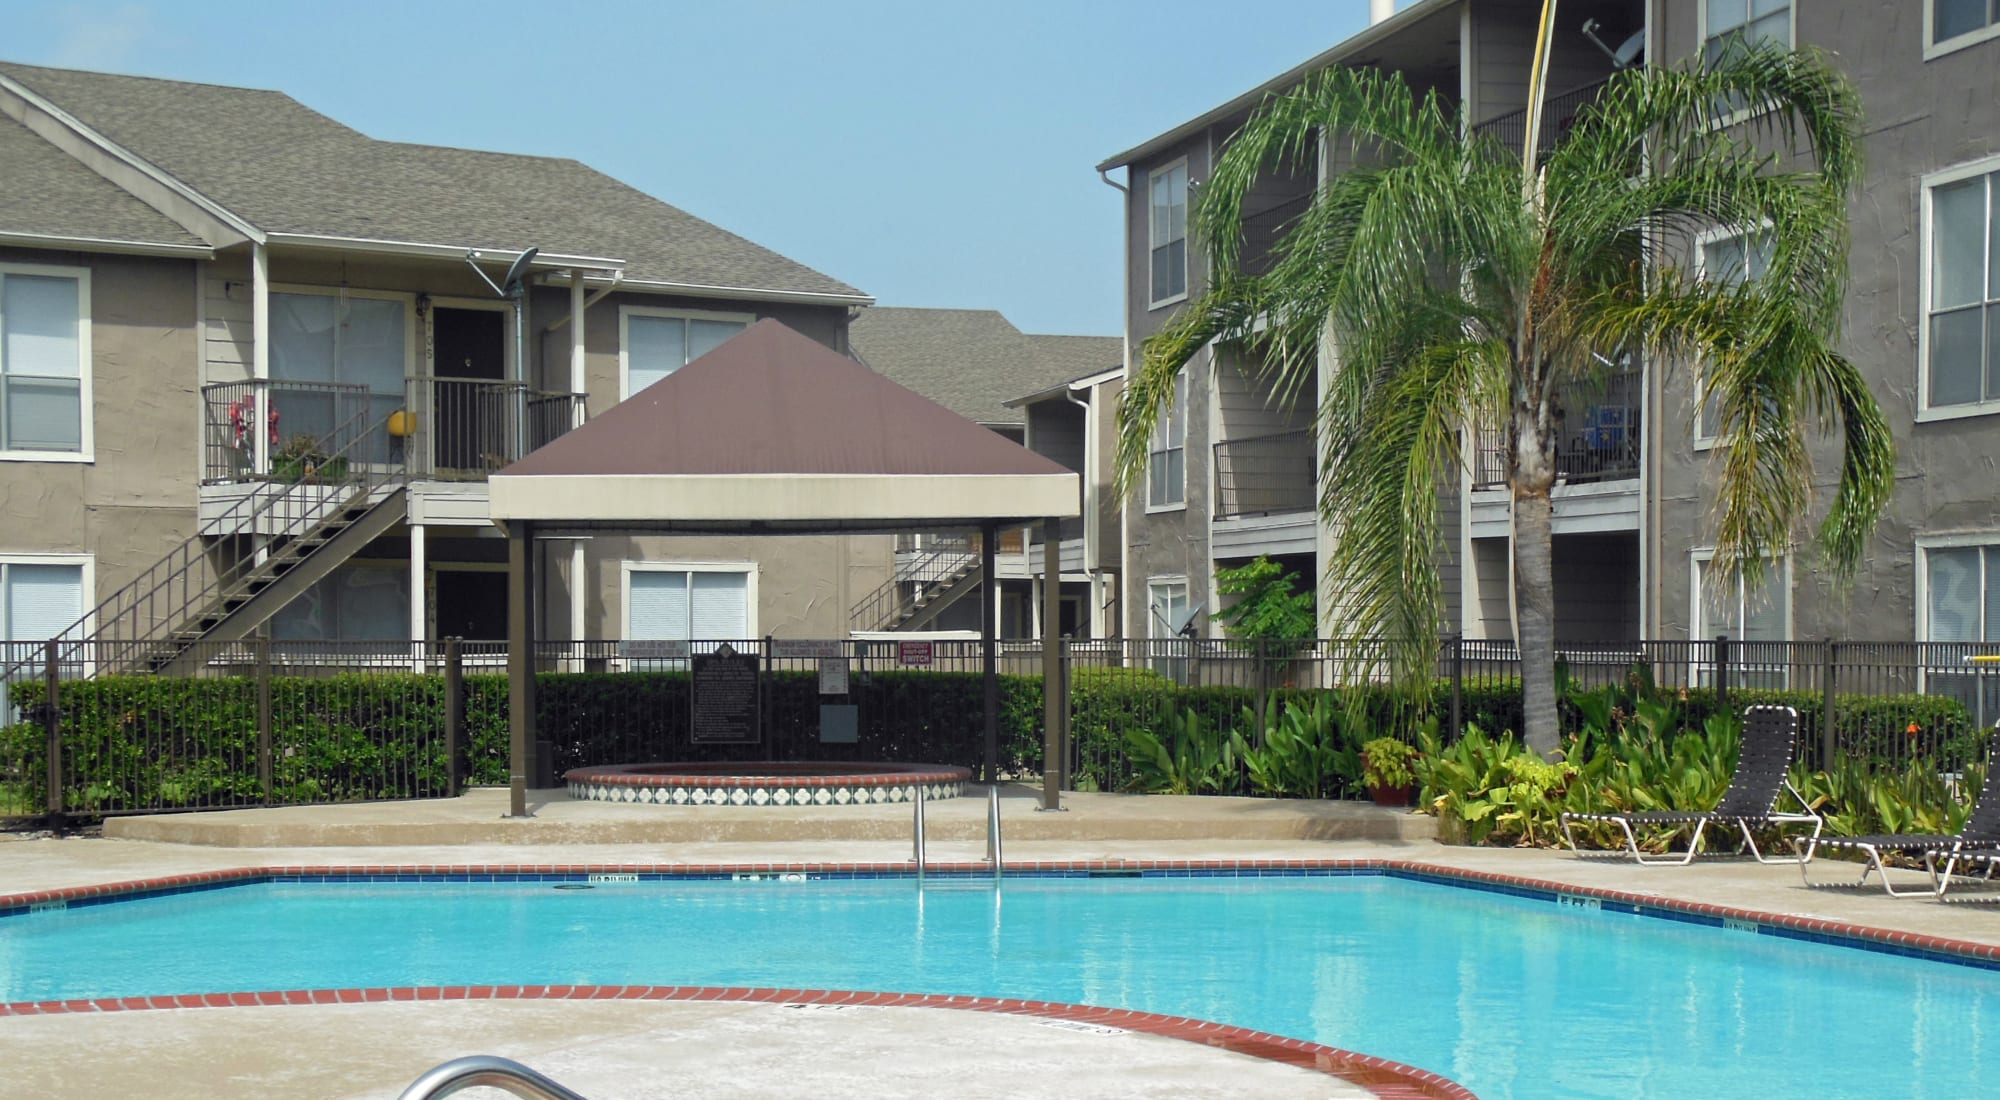 Apartments at Walden Pond in Houston, Texas